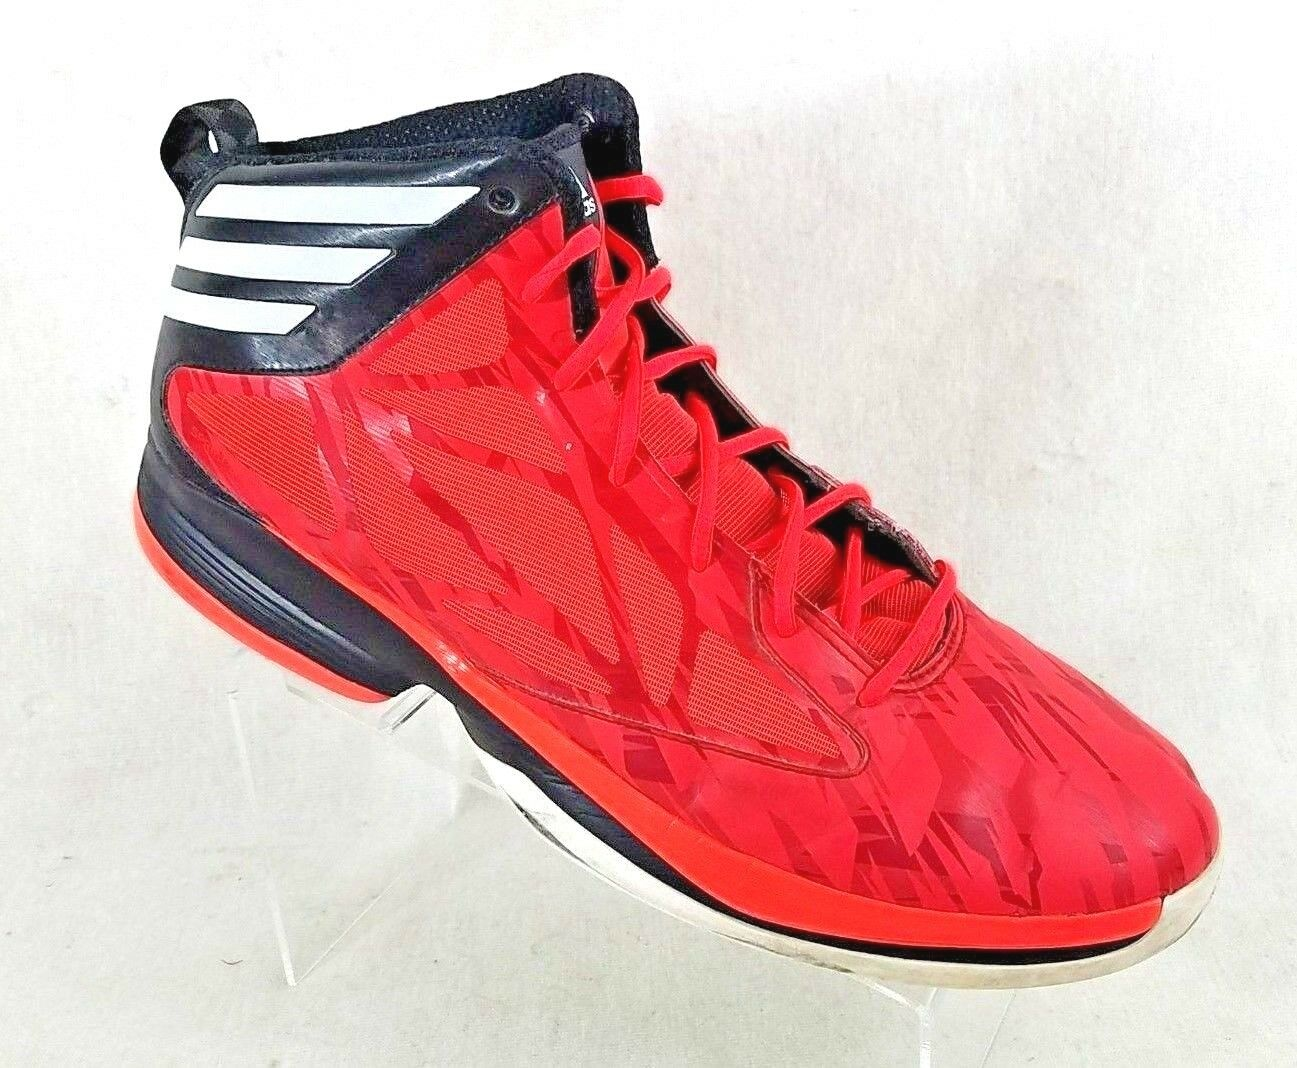 Adidas Orange Leather High Top Basketball Sneakers APE 779001 Men's US Comfortable Cheap and beautiful fashion